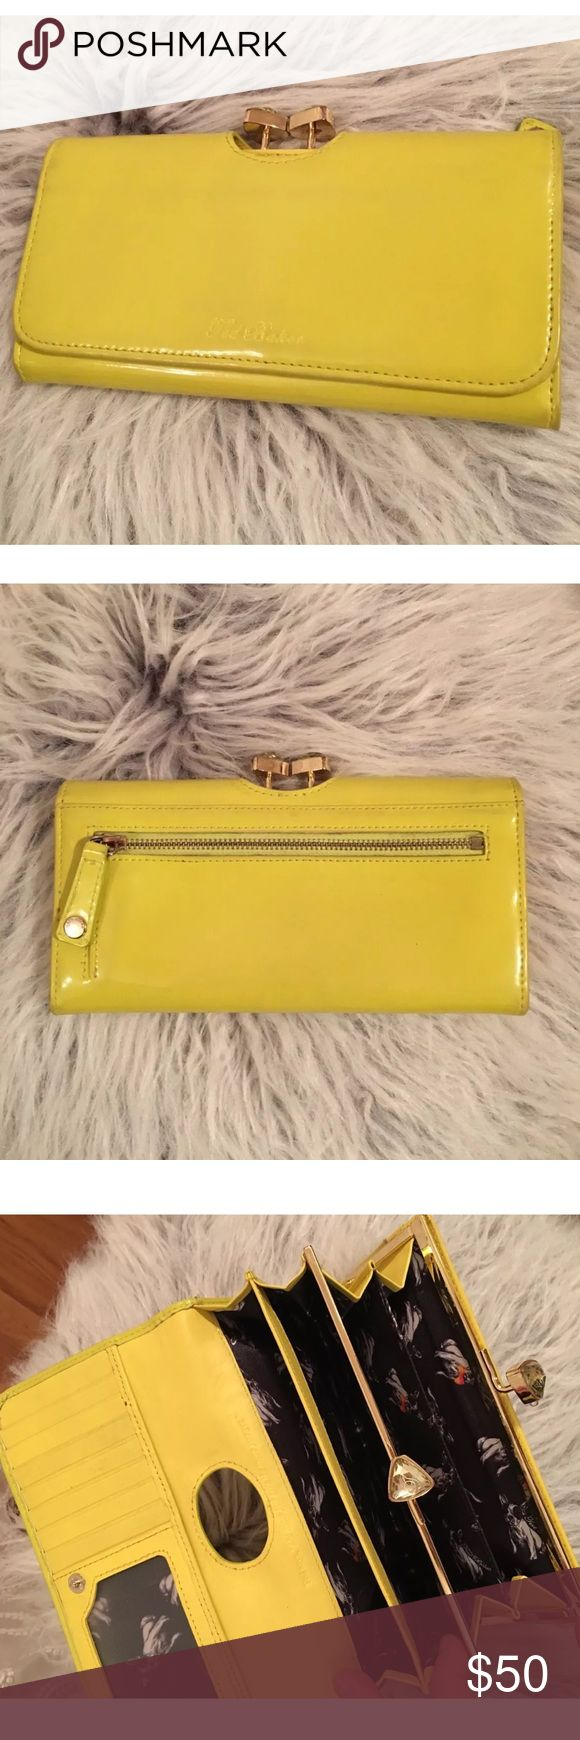 💥FLASH SALE💥 Ted Baker London yellow wallet Very beautiful wallet, bow clutch and patent neon leather. Offers welcome Ted Baker Bags Wallets